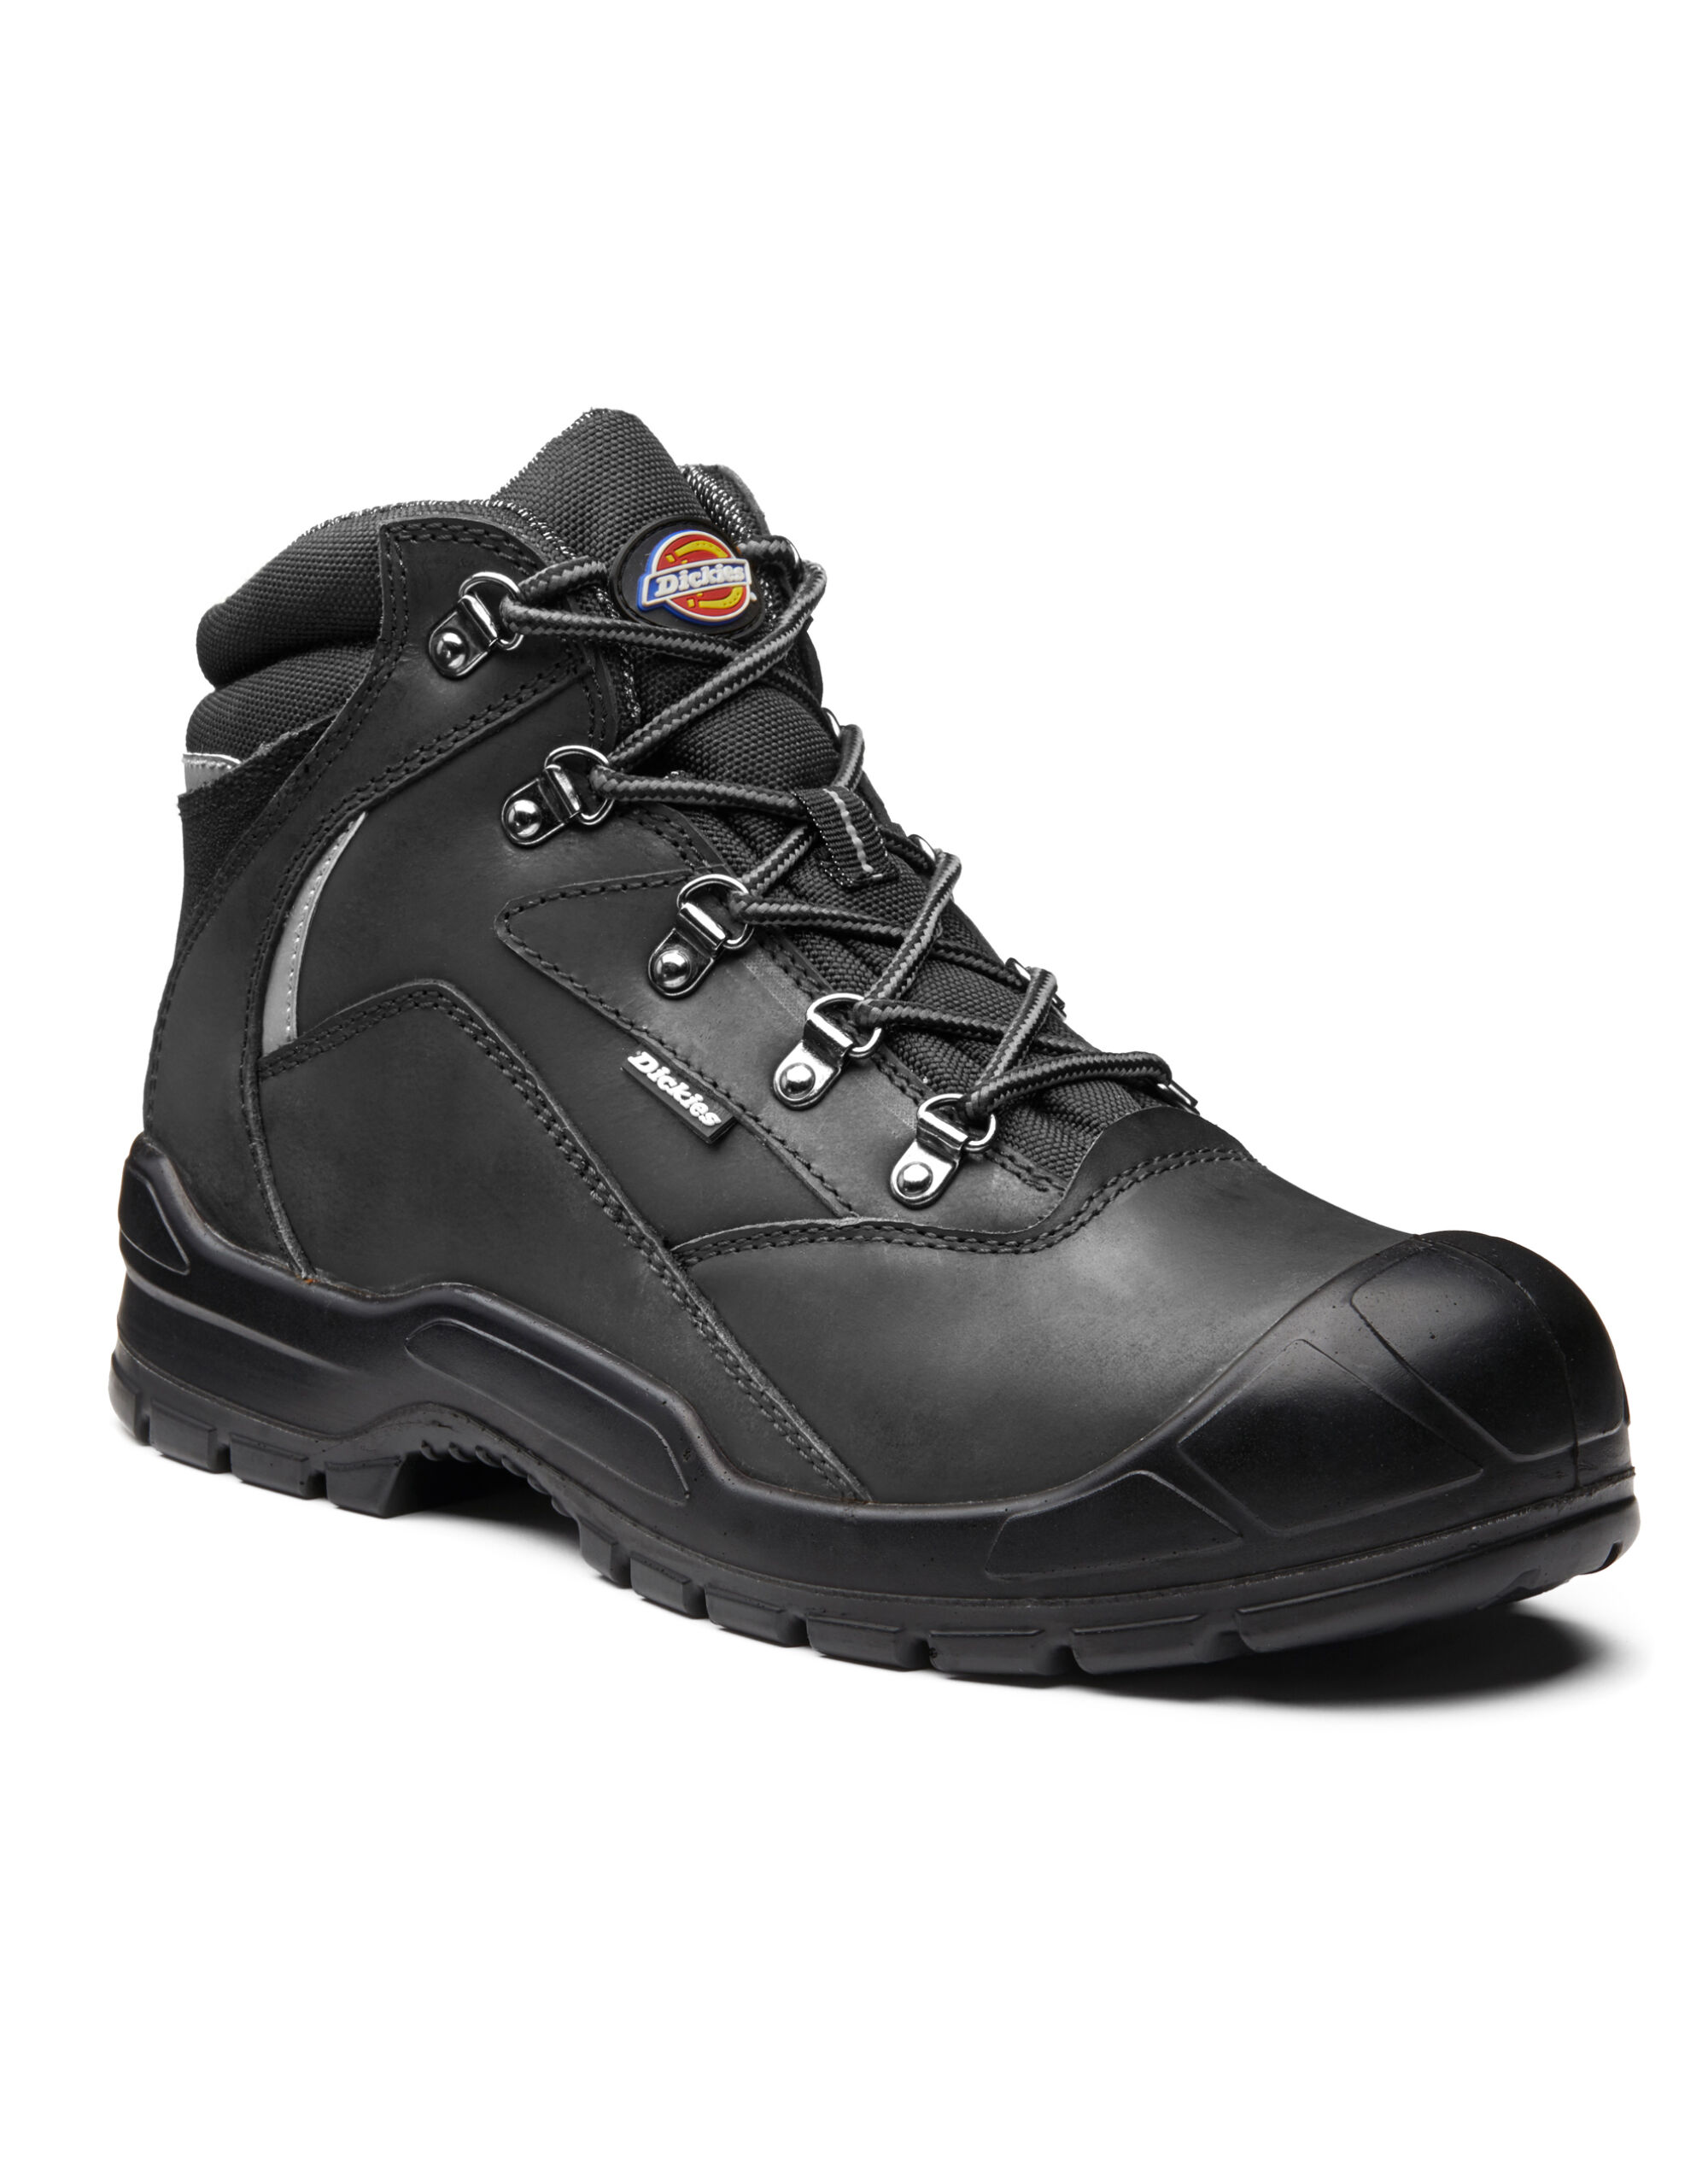 Davant II Safety Boot